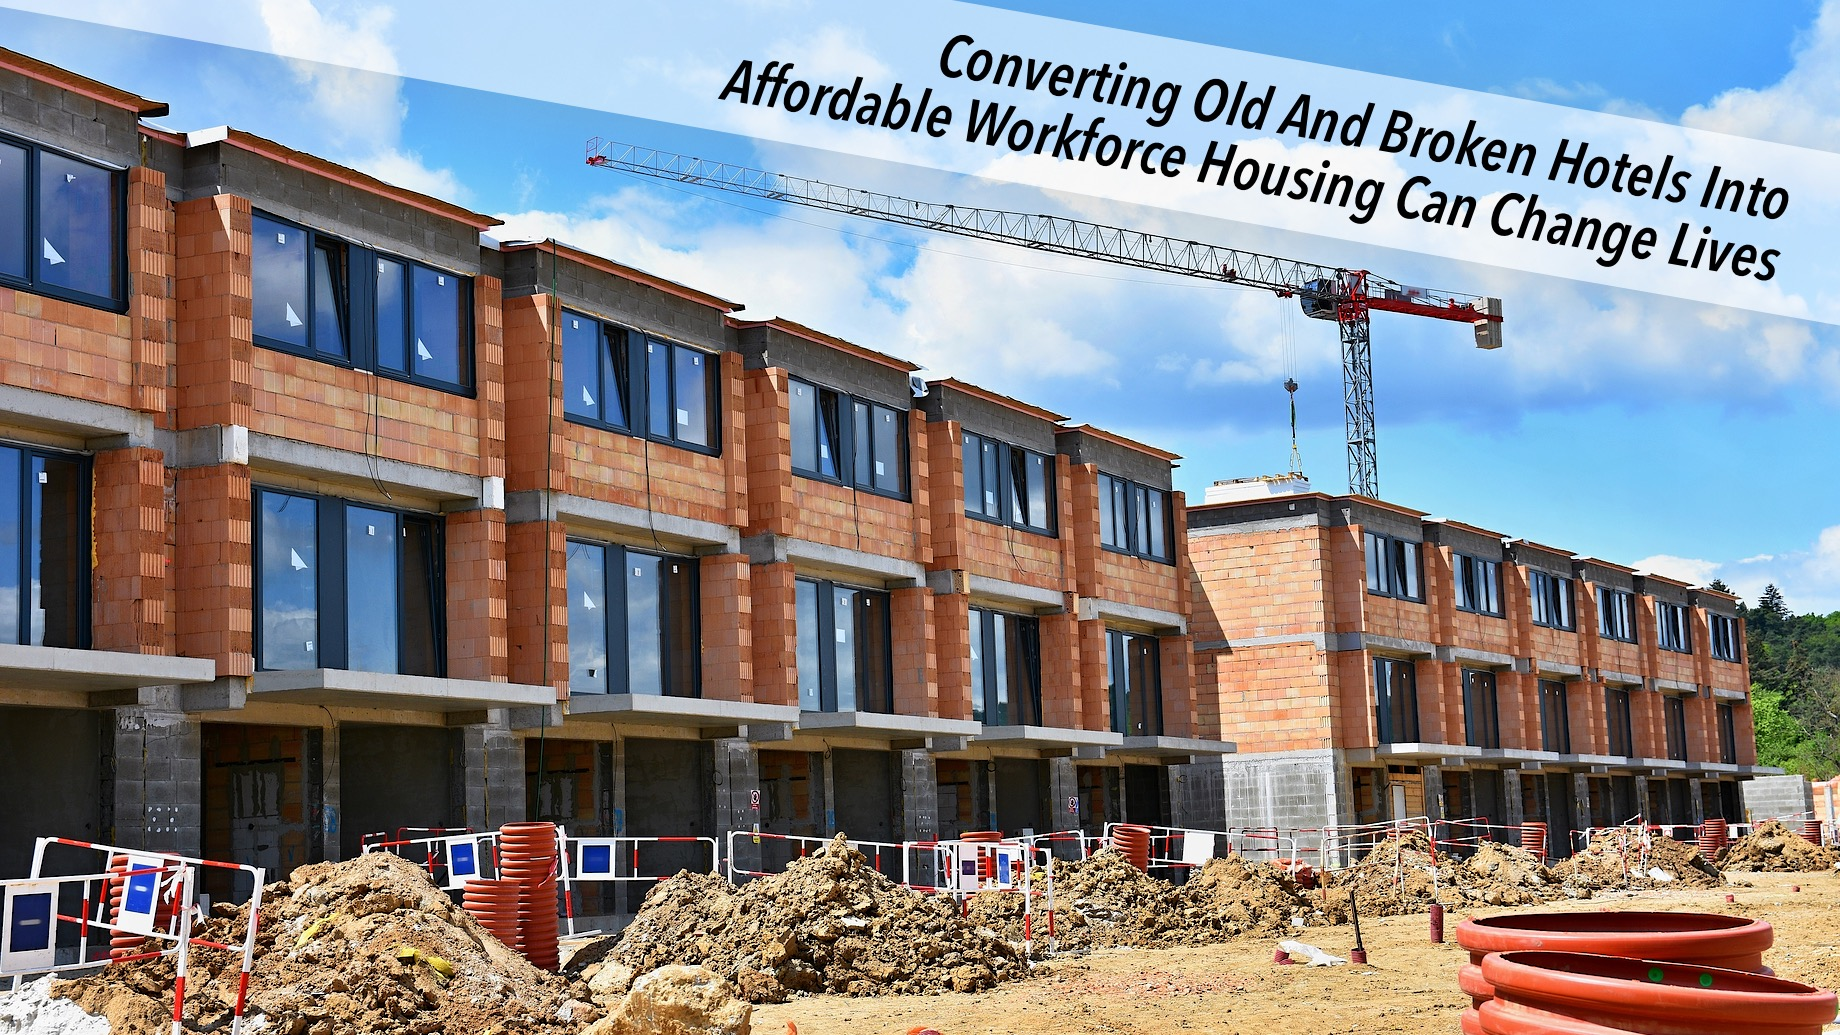 Converting Old And Broken Hotels Into Affordable Workforce Housing Can Change Lives